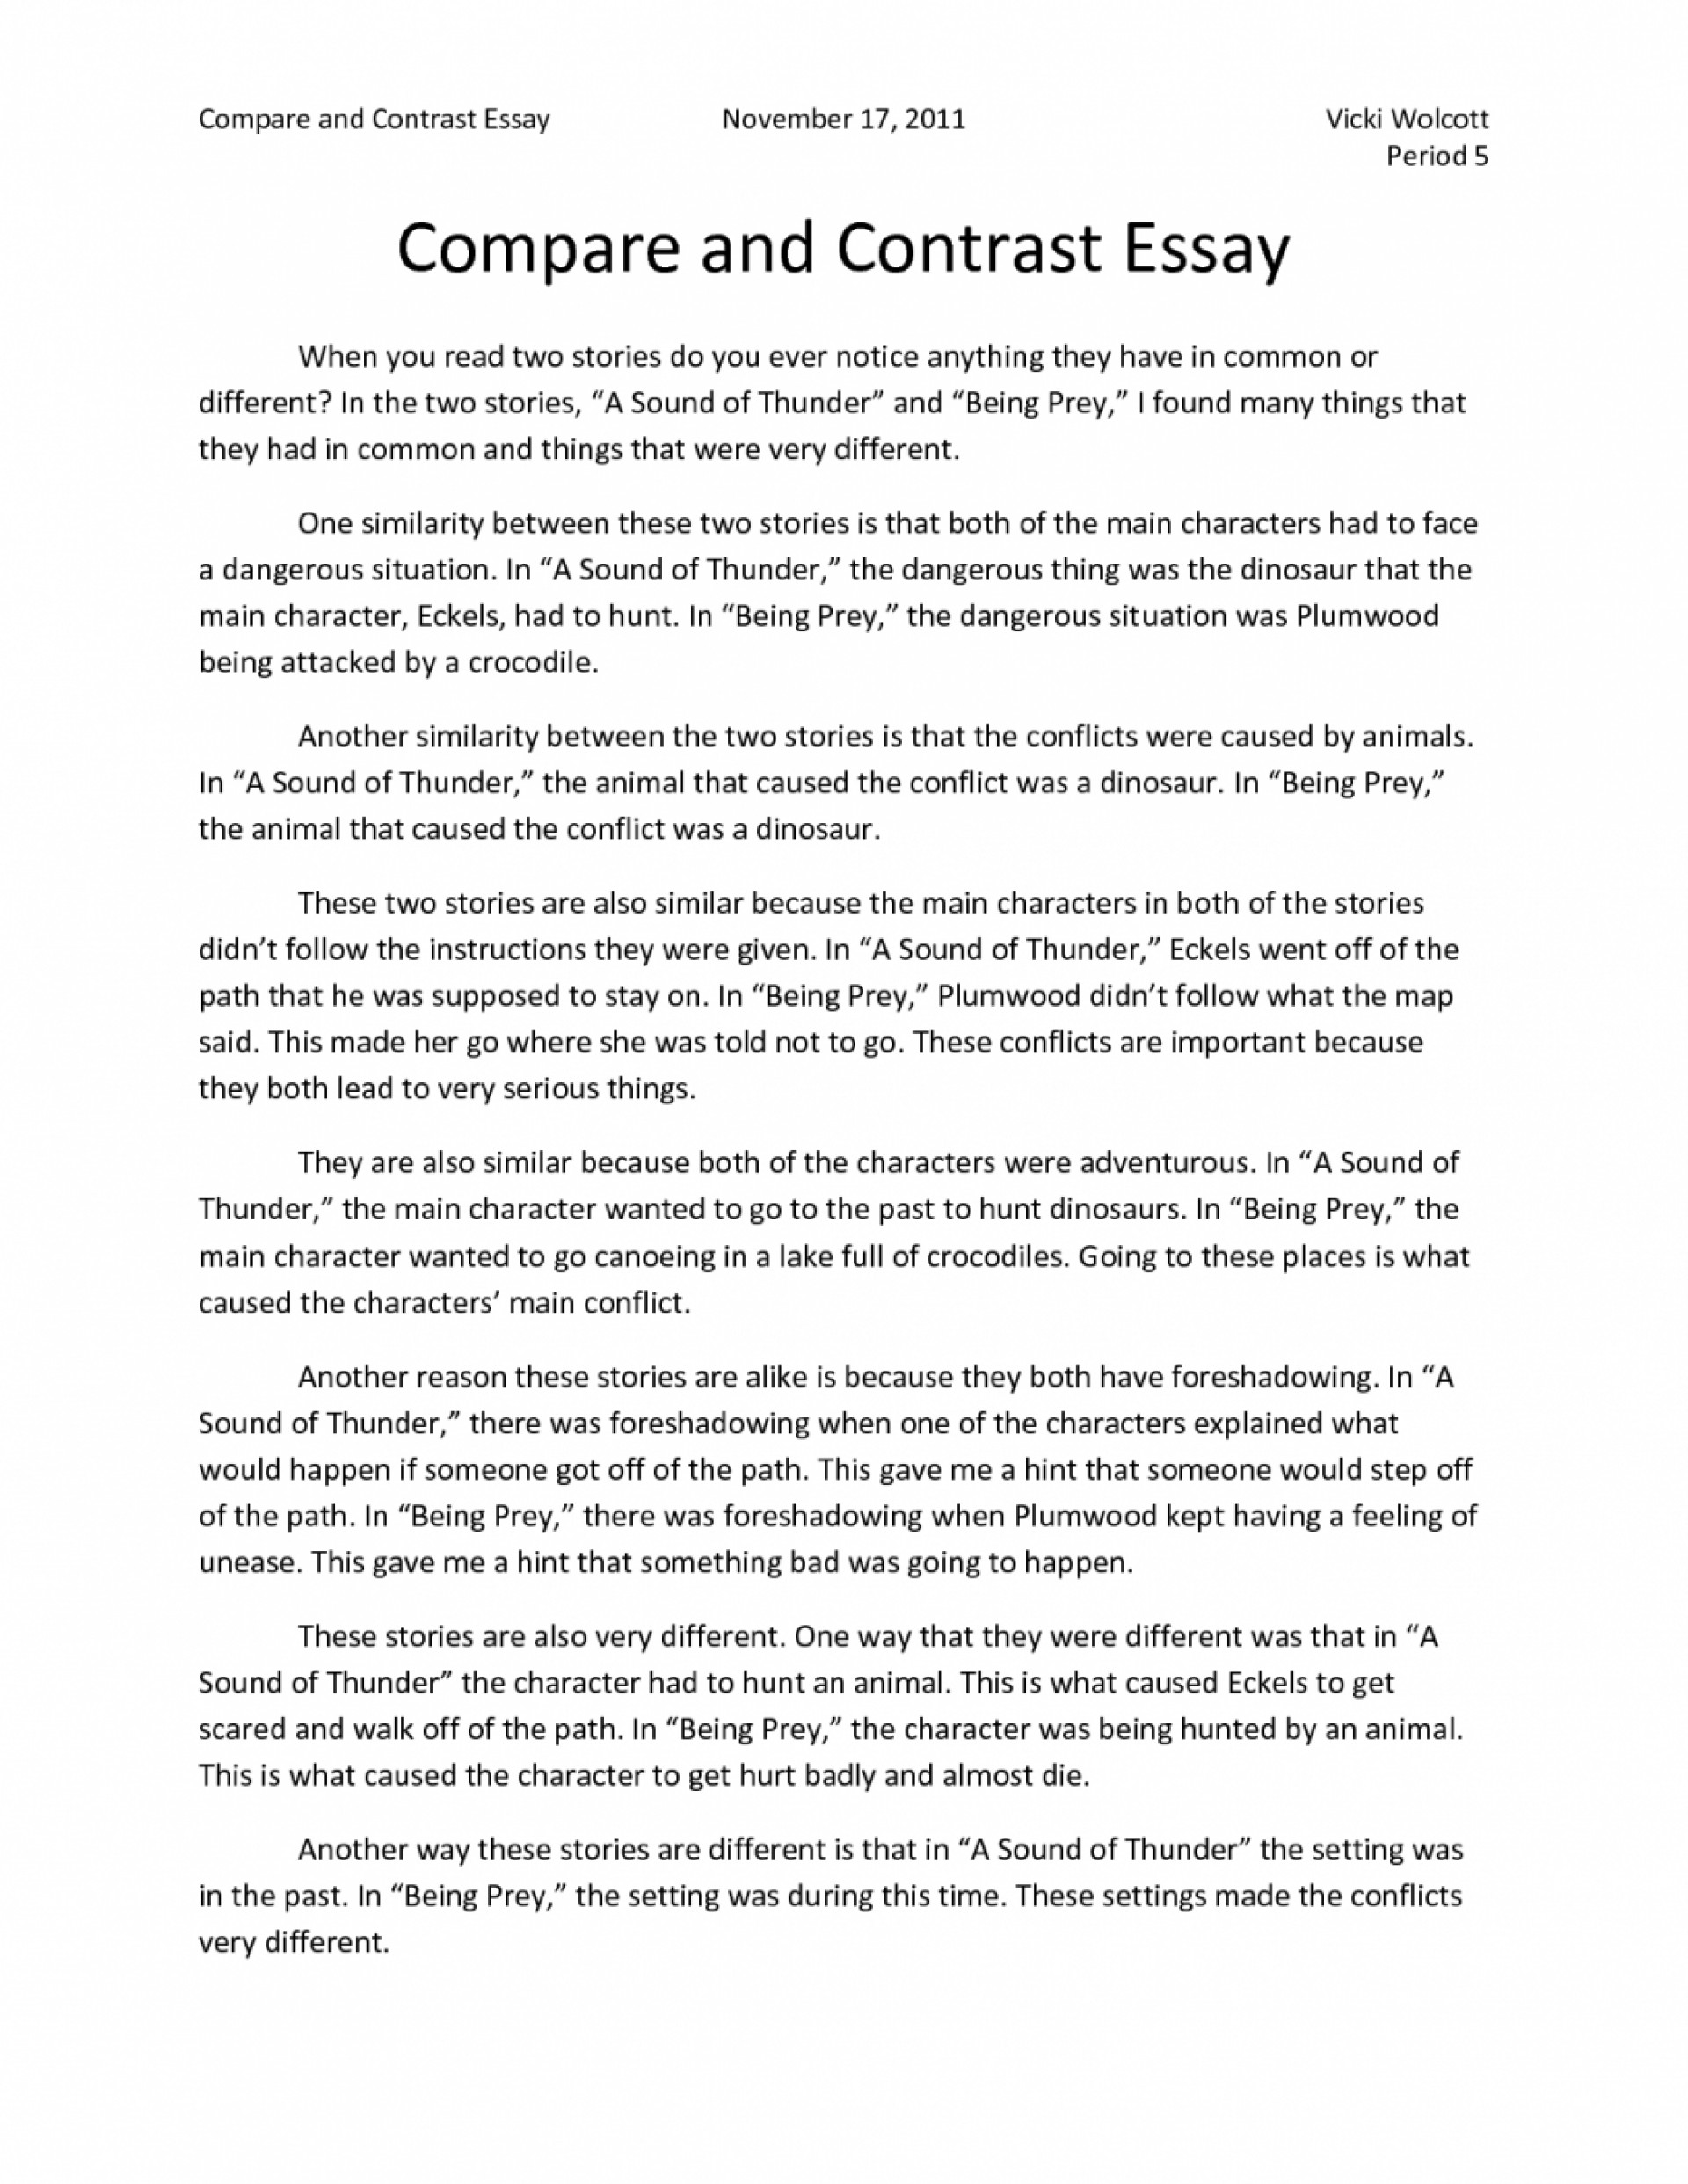 003 Conclusion For Compare And Contrastsay Writing Comparison Argumentative Research Paper Example Contrast Science Pdf Examples Outline Mla Apa History Scientific 1048x1356 Striking How To Write Essay A Good Introduction Essays 1920